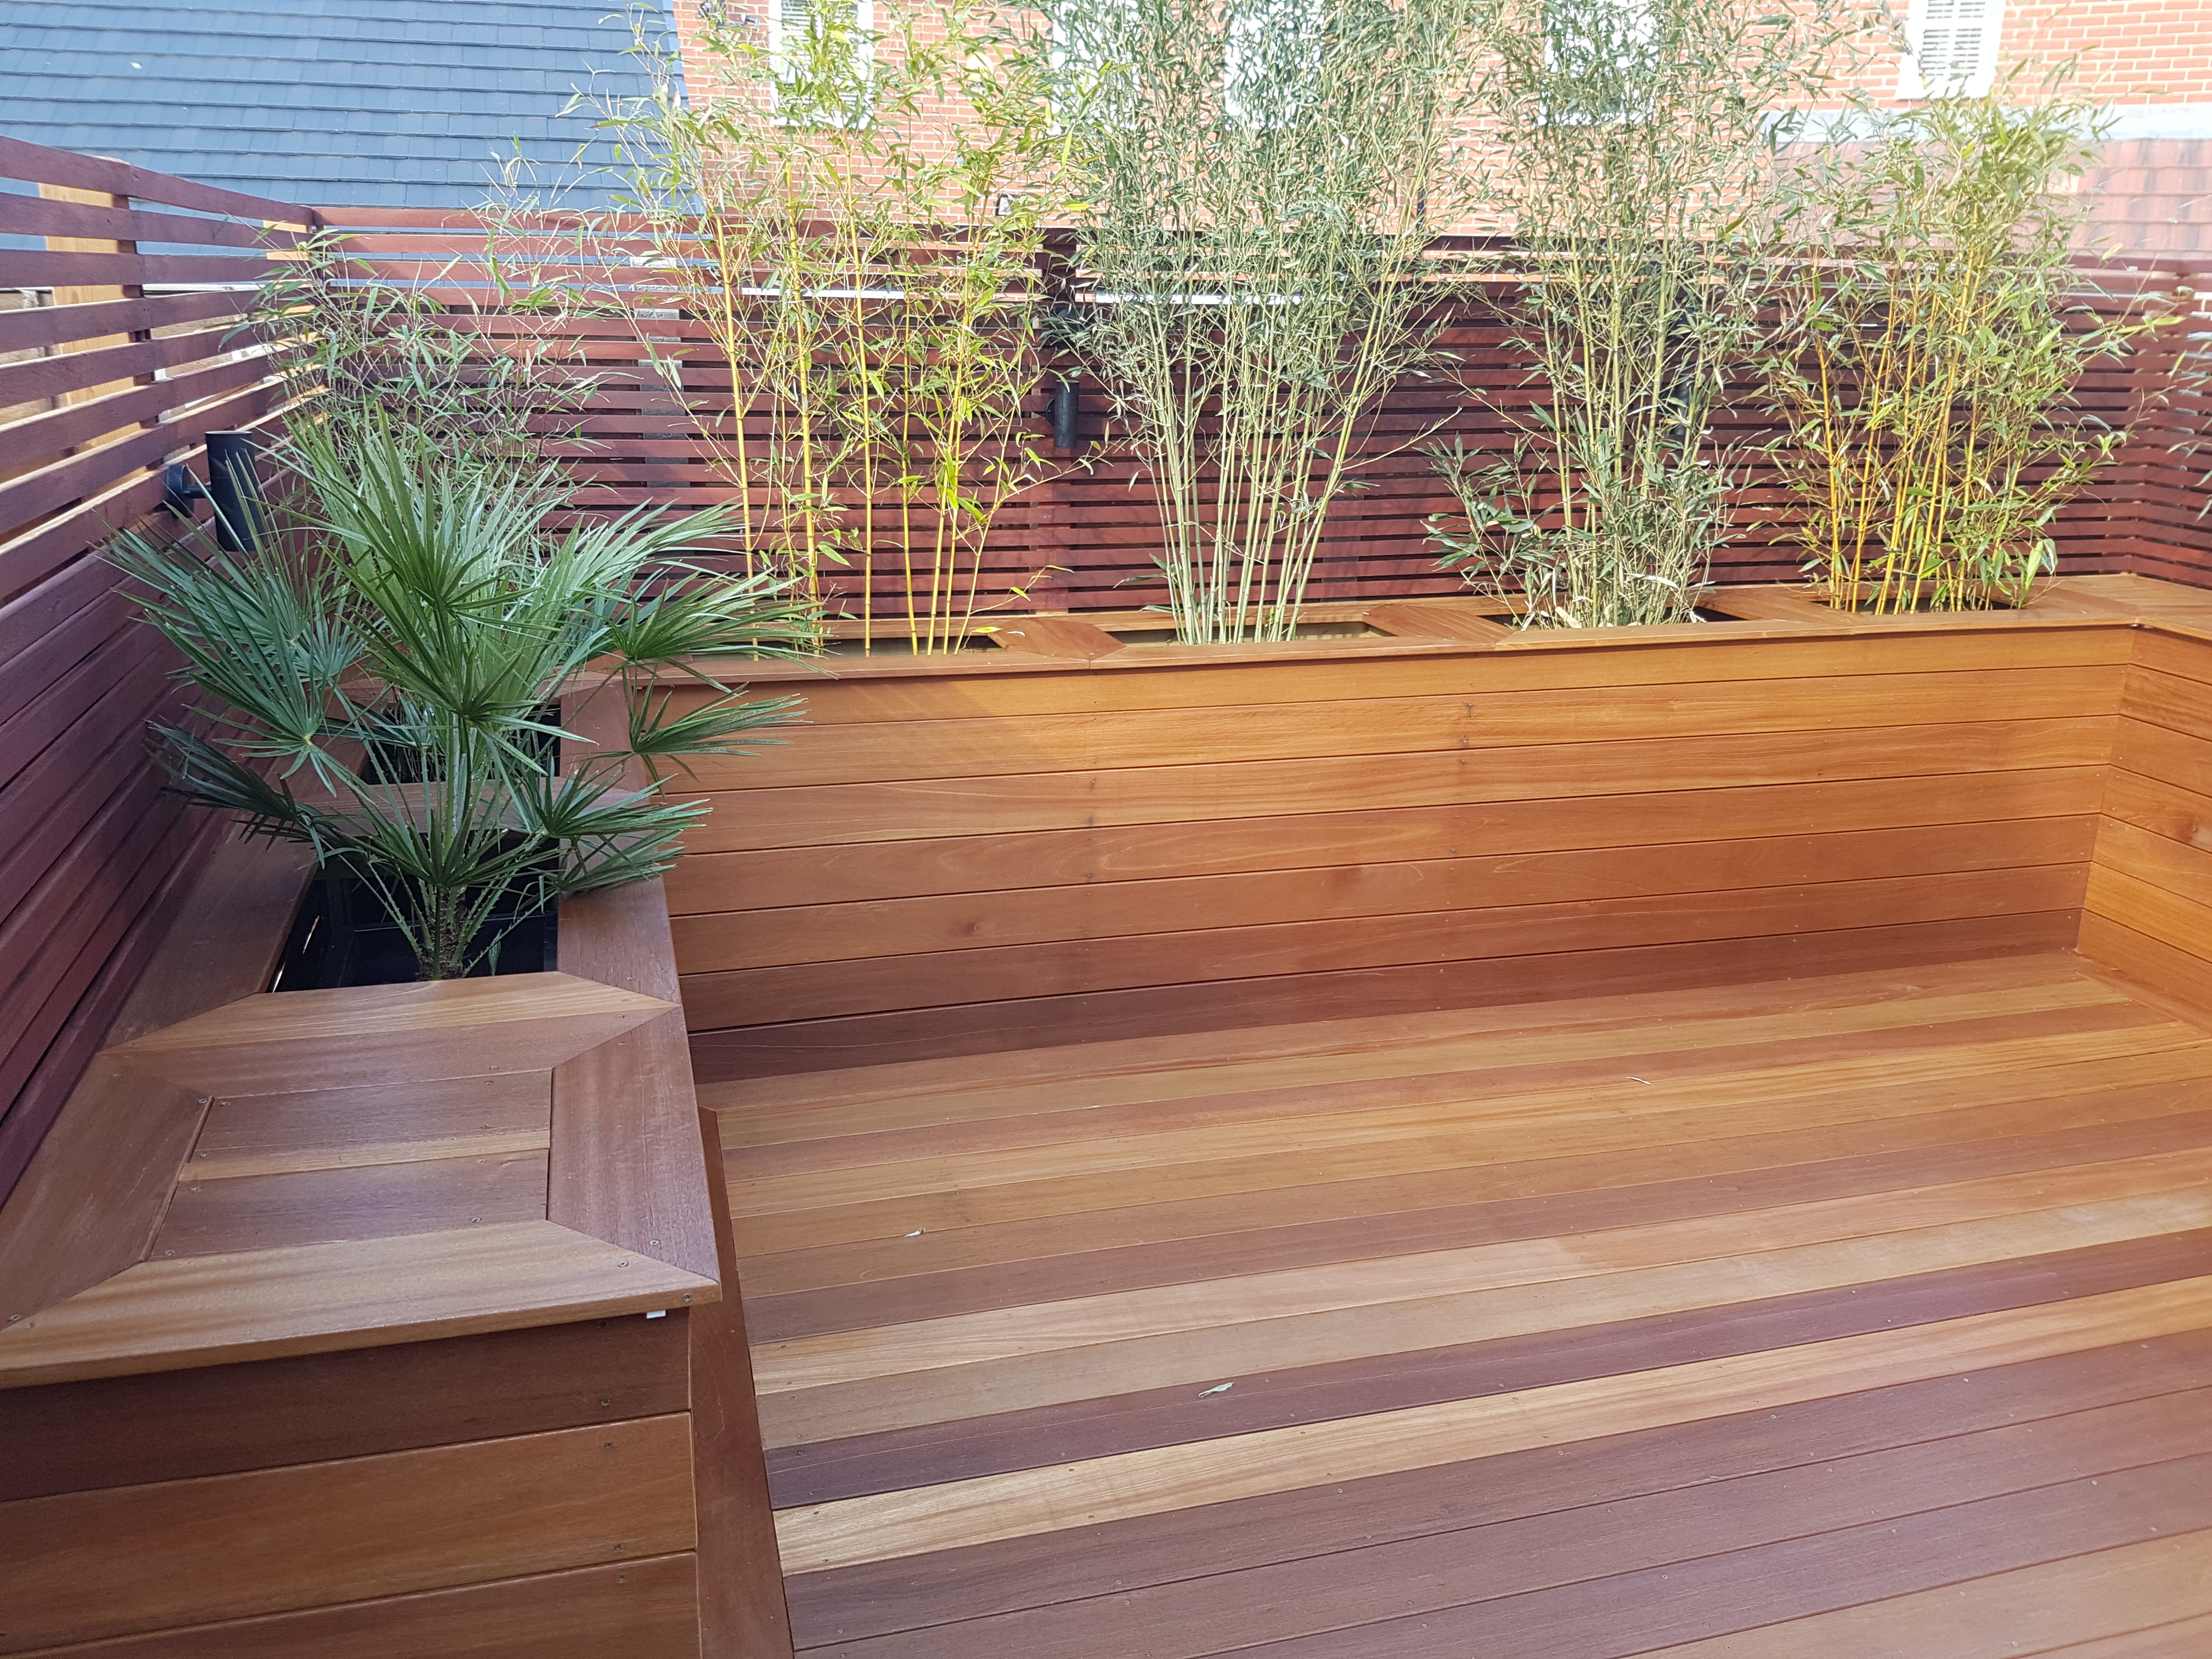 Deck and planters